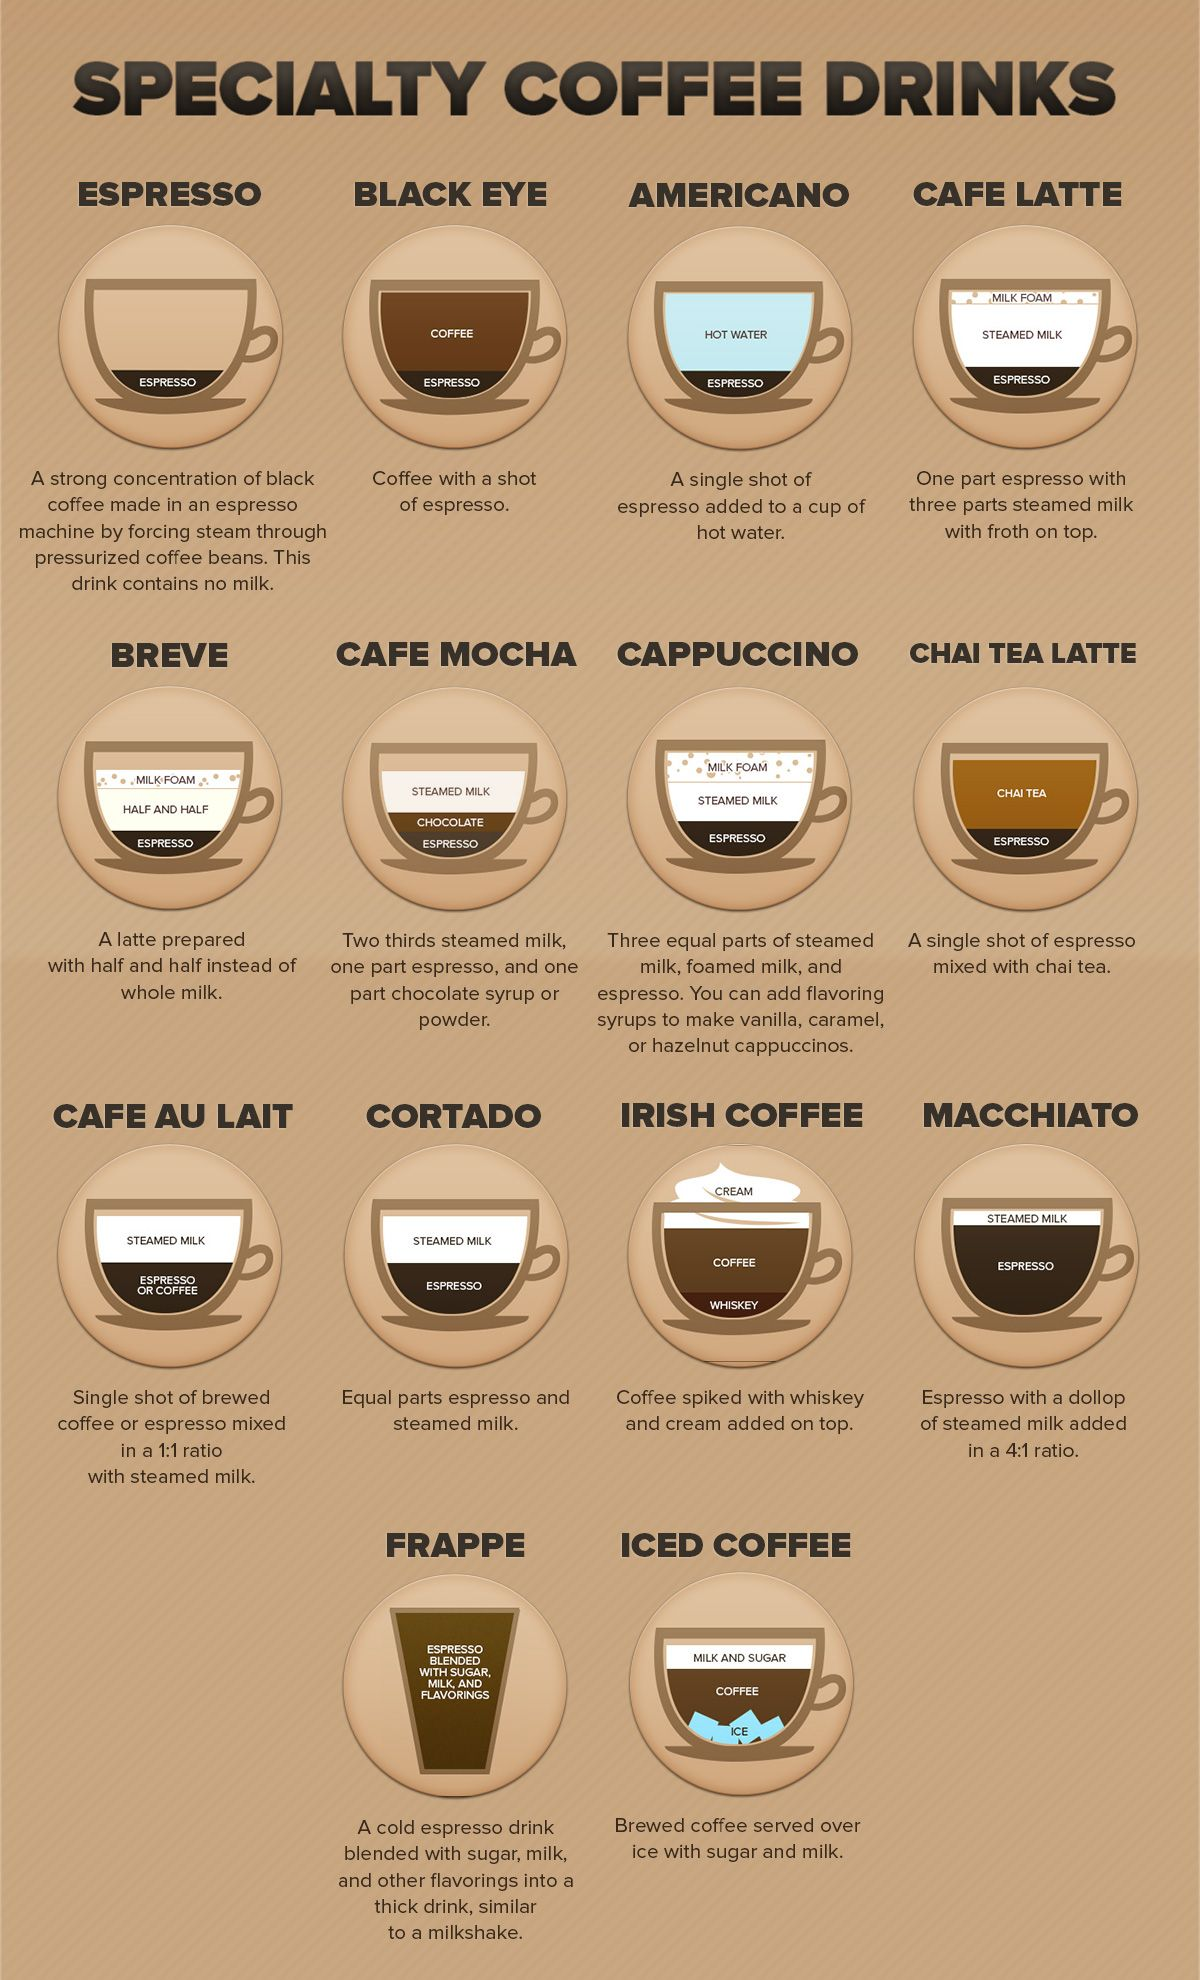 Specialty Coffee Drinks More